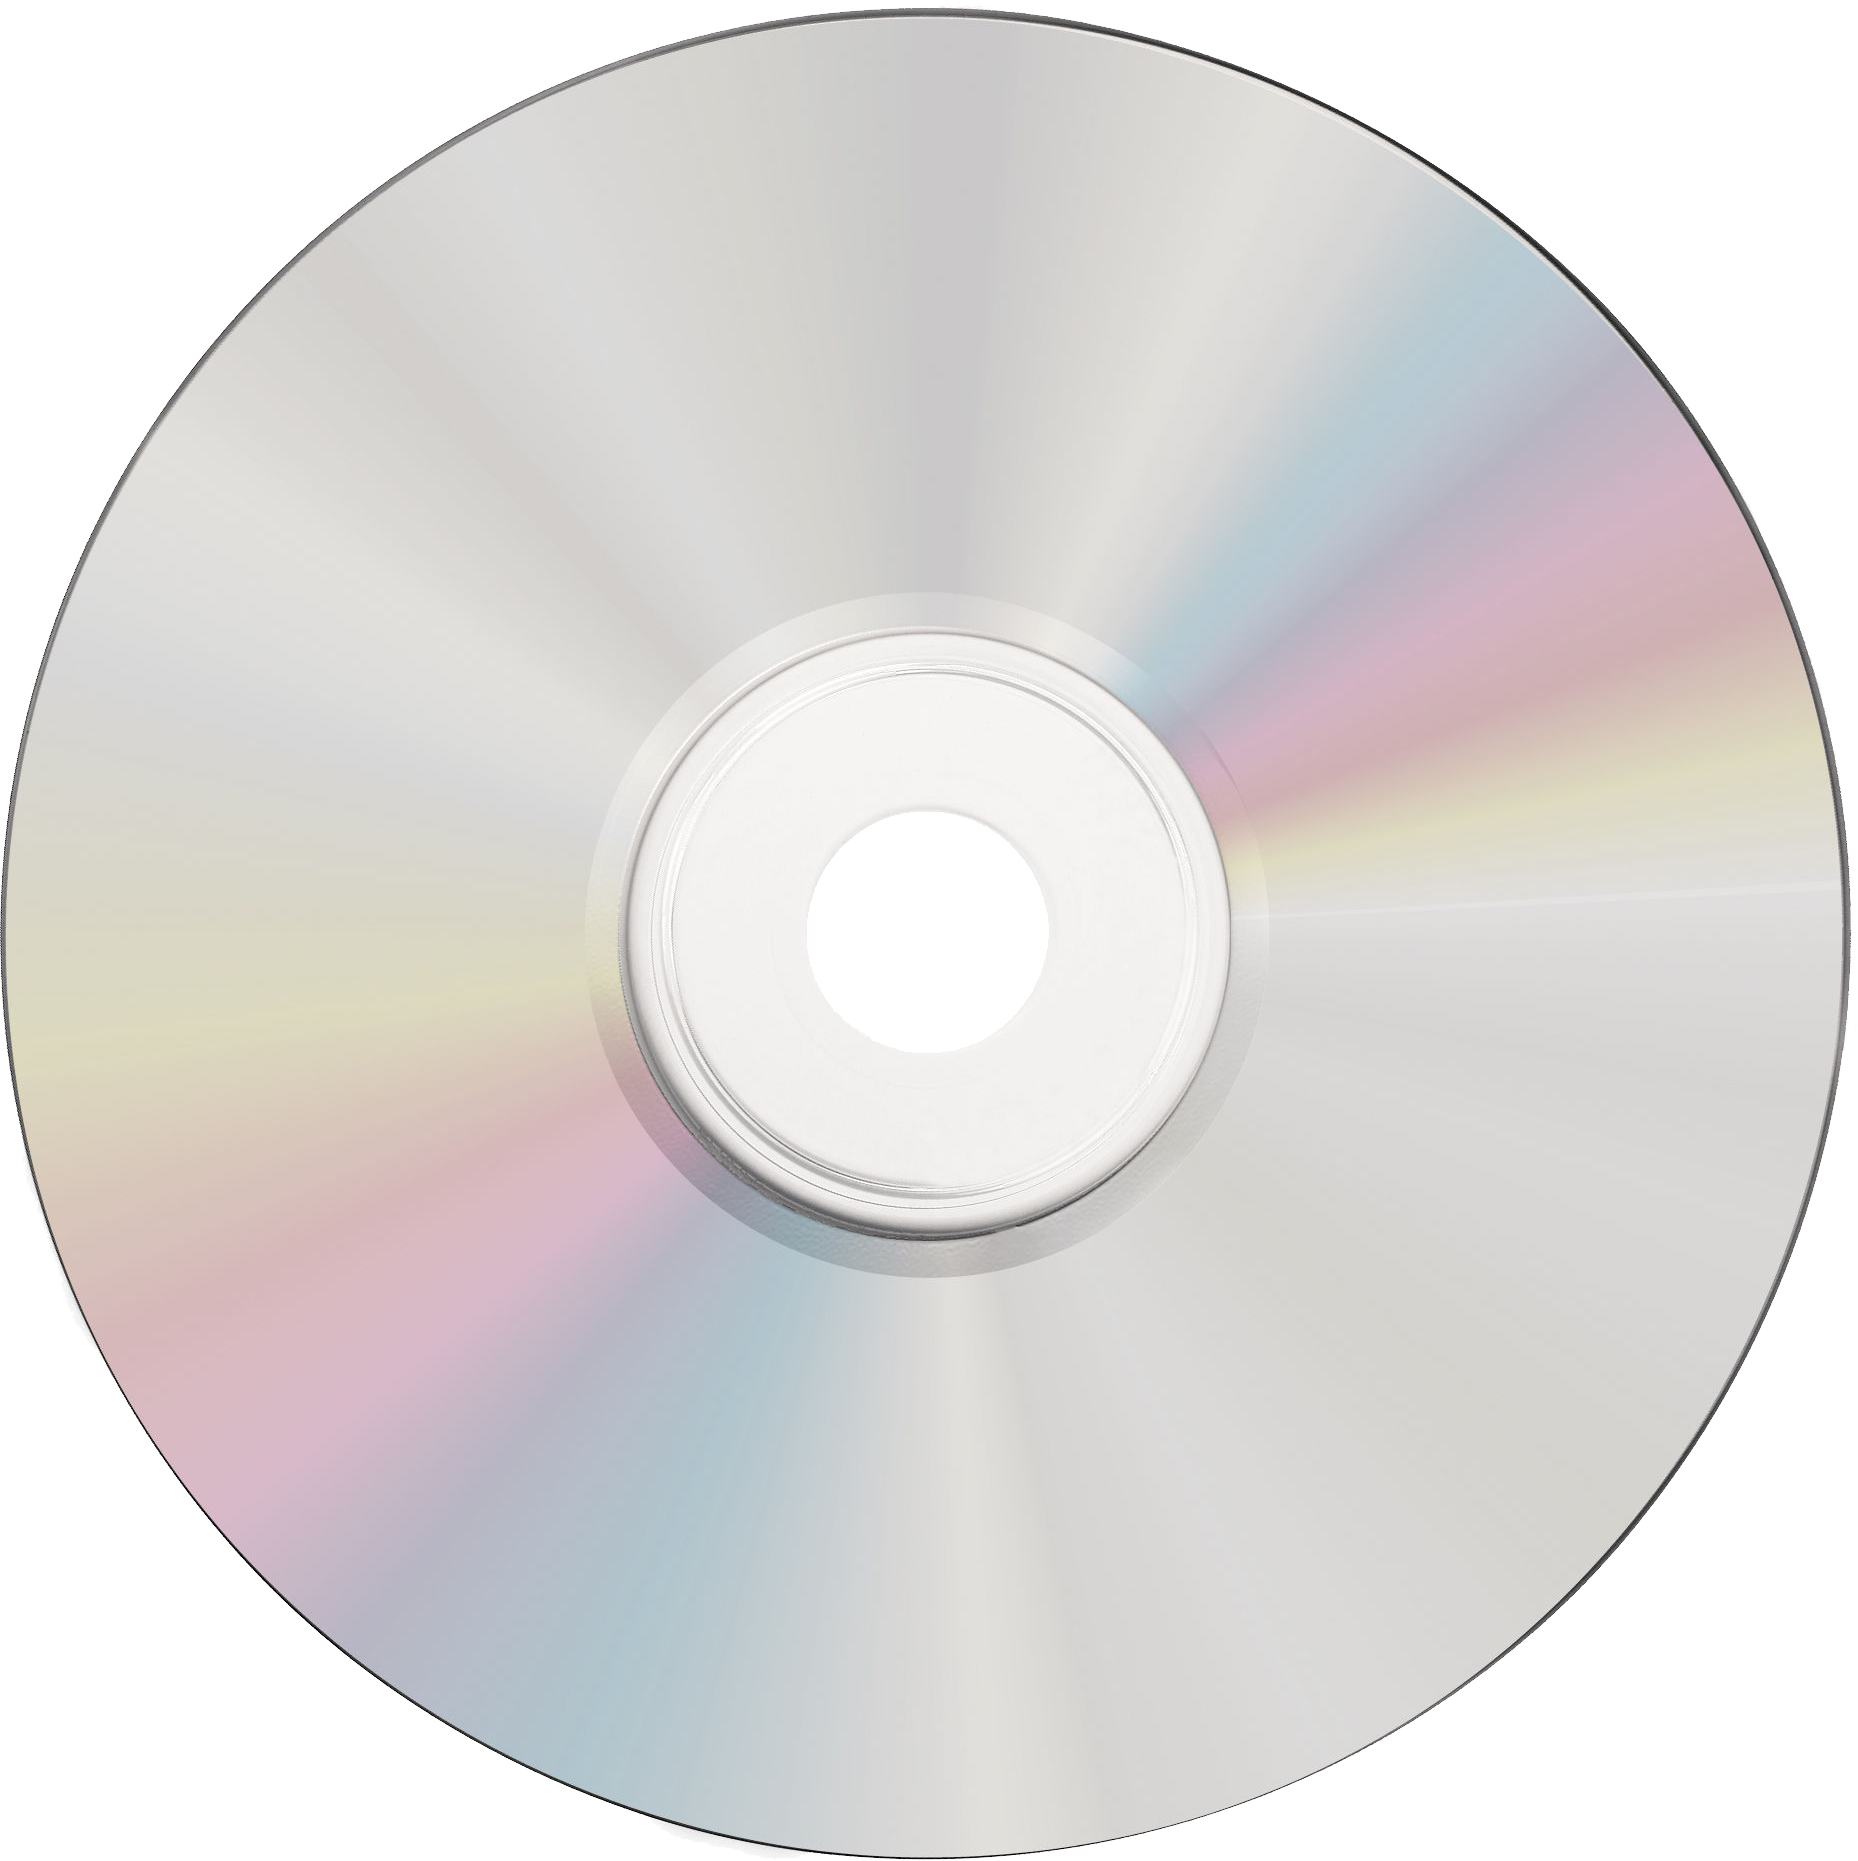 compact cd, dvd disk png images logo #6273